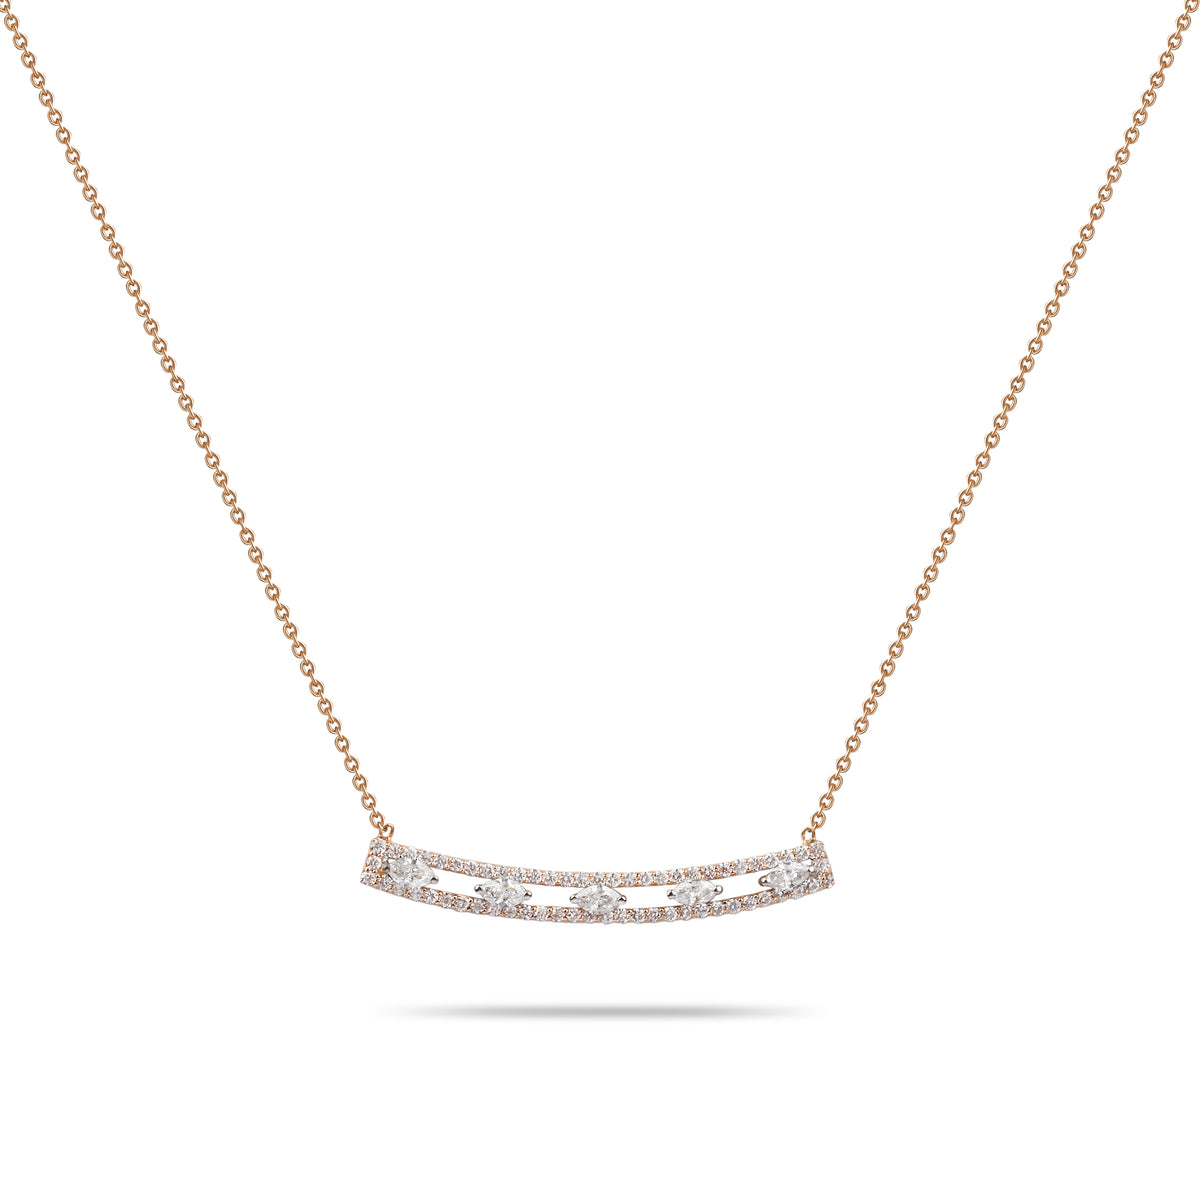 Rose Gold with Marquise Diamonds Necklace